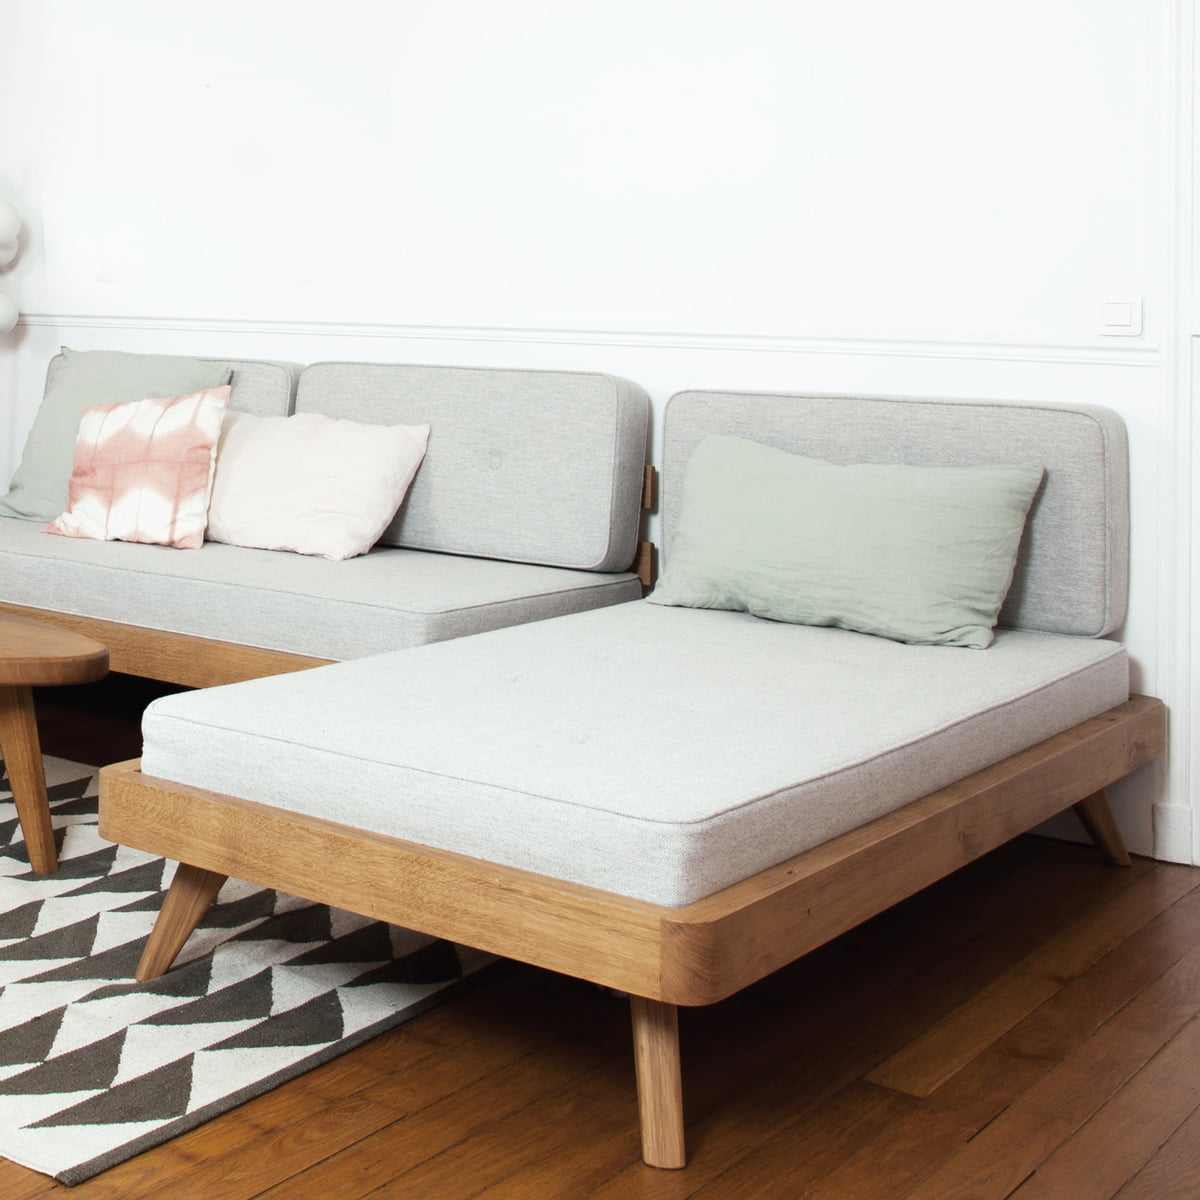 Flexible Sofa U0026 Daybed In One